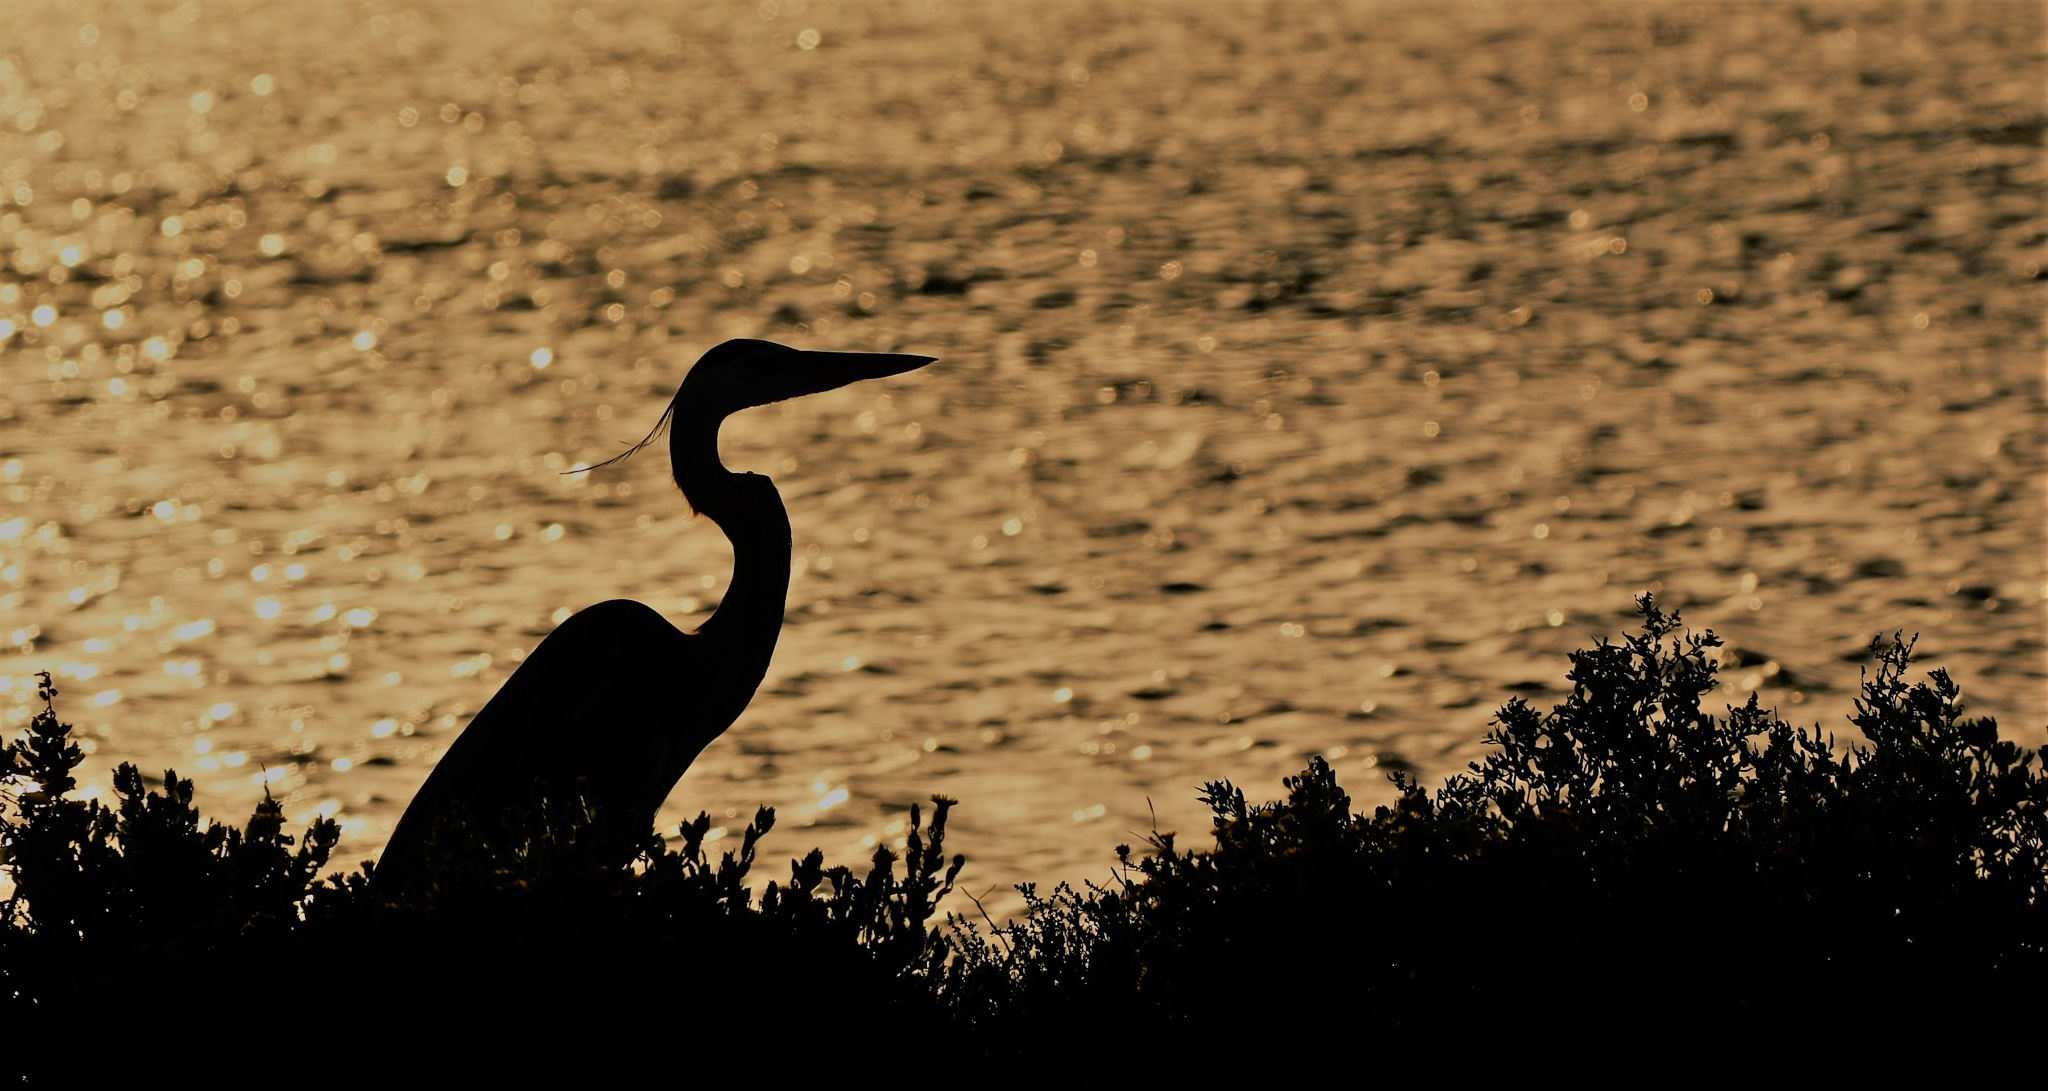 silhouette by Pelican